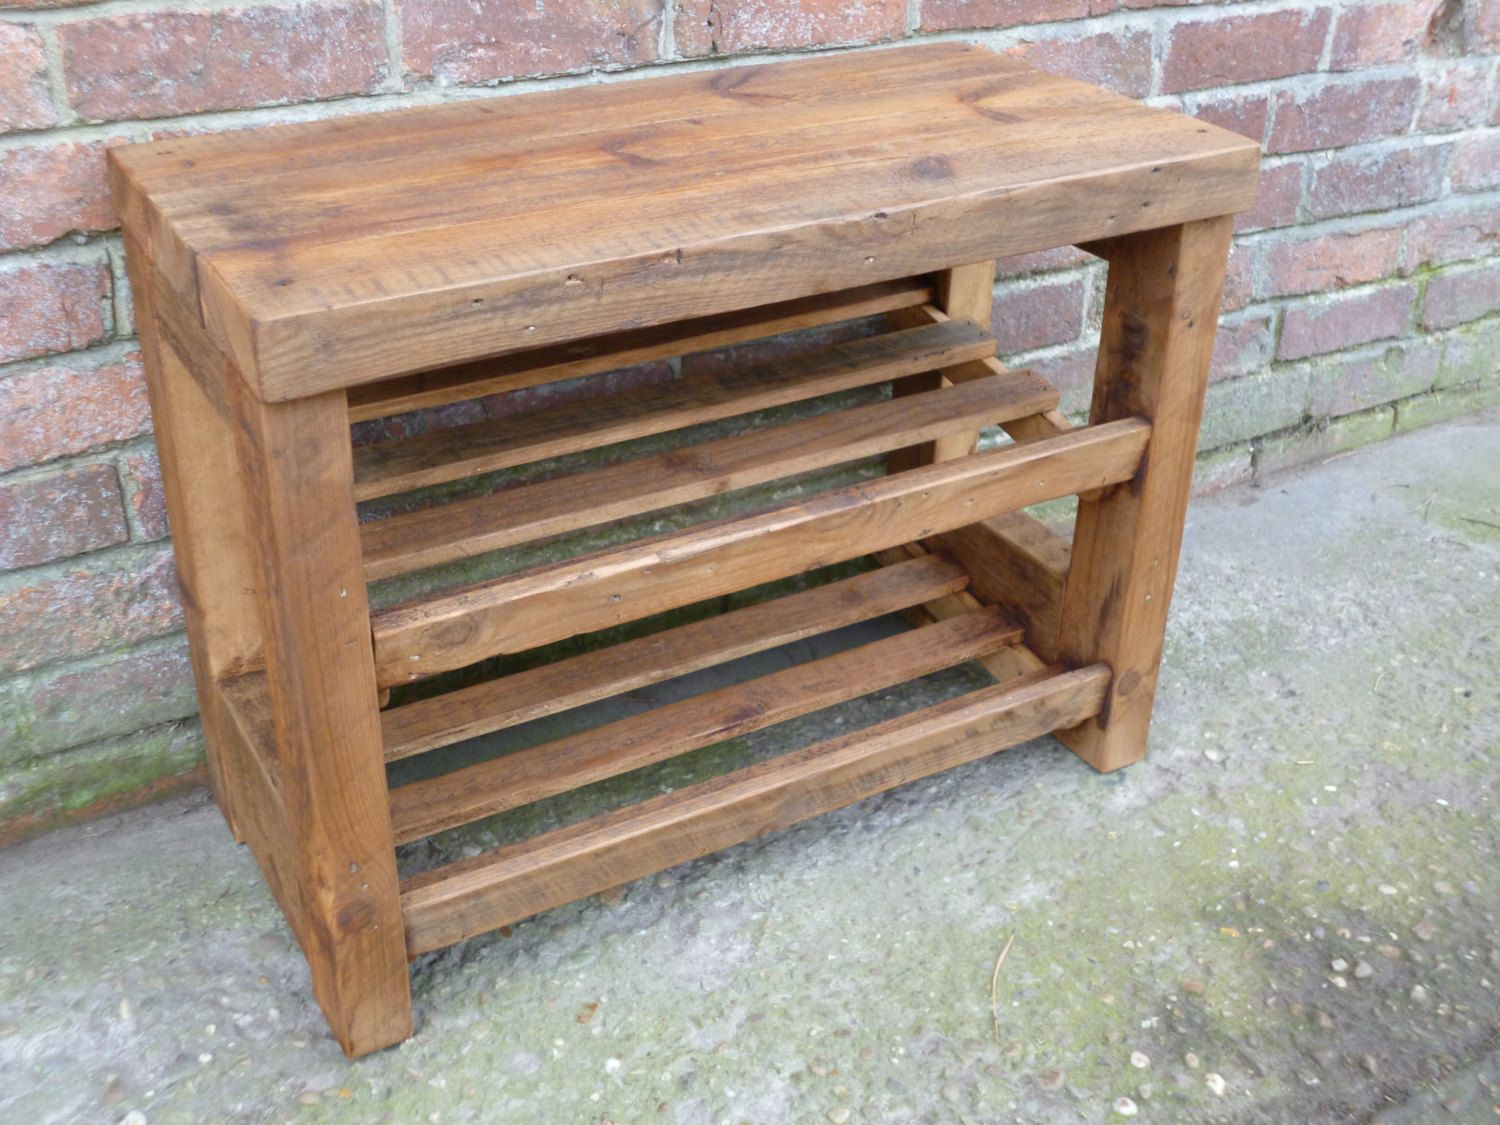 Furniture Simple Style Of Wooden Outdoor Shoe Rack In Charming Design Idea With Two Storages To Save Nine Shoe Rack With Seat Wood Shoe Rack Rustic Shoe Rack